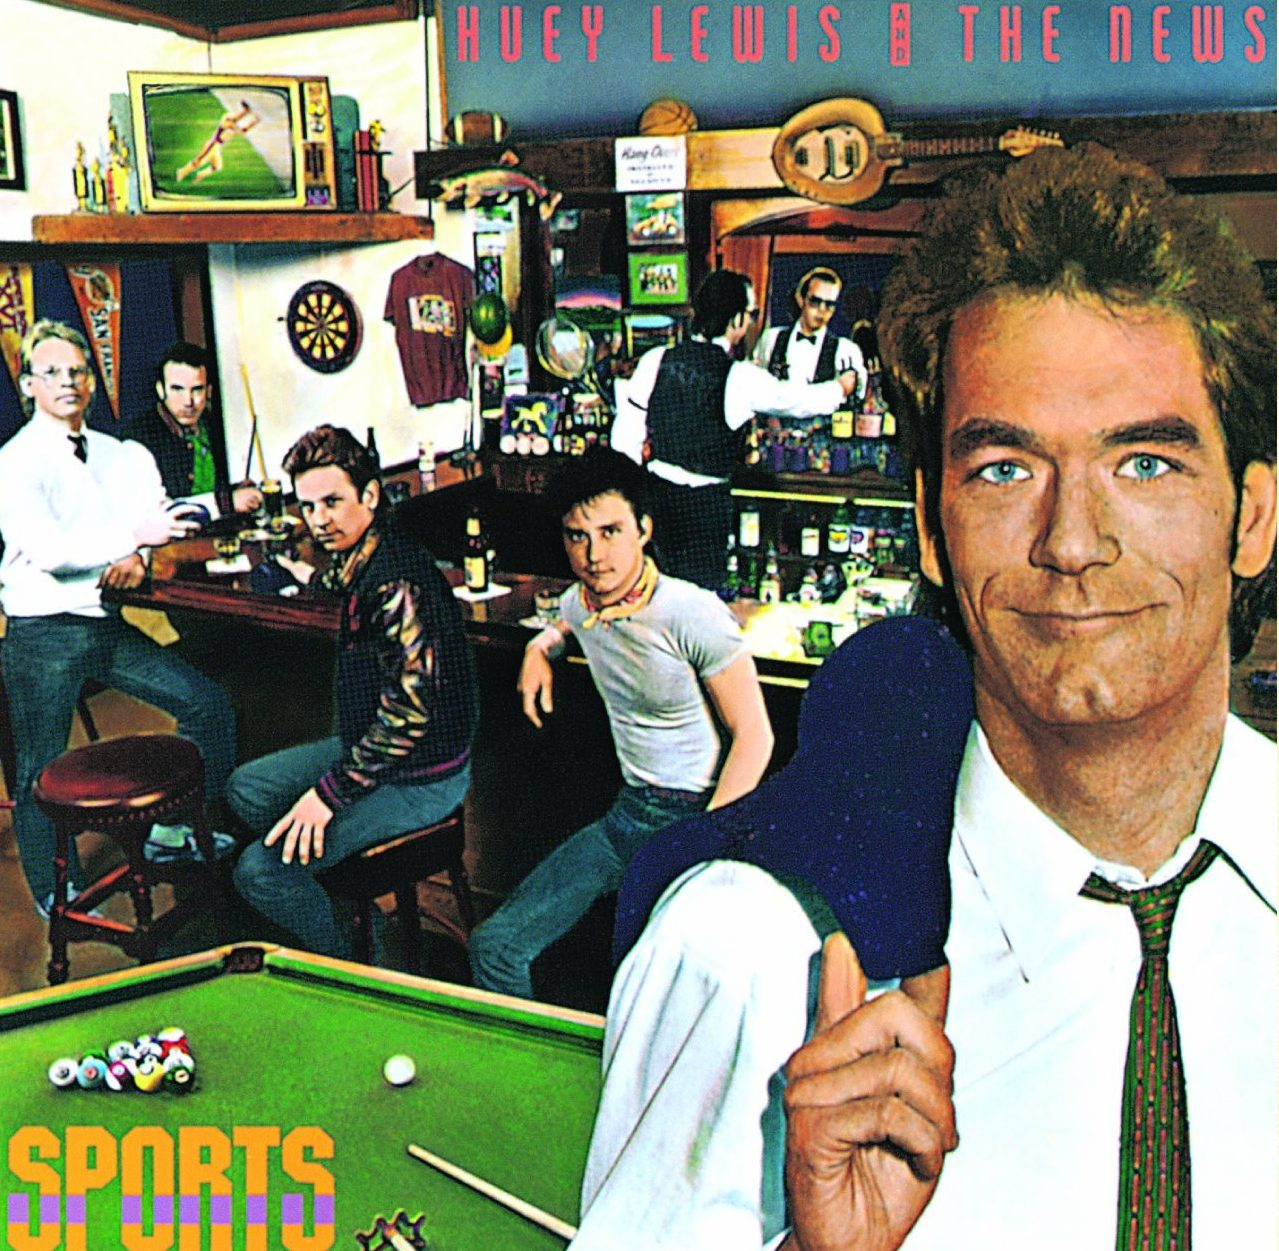 sports 30 e1625838311840 20 Things You Might Not Have Known About Huey Lewis and the News